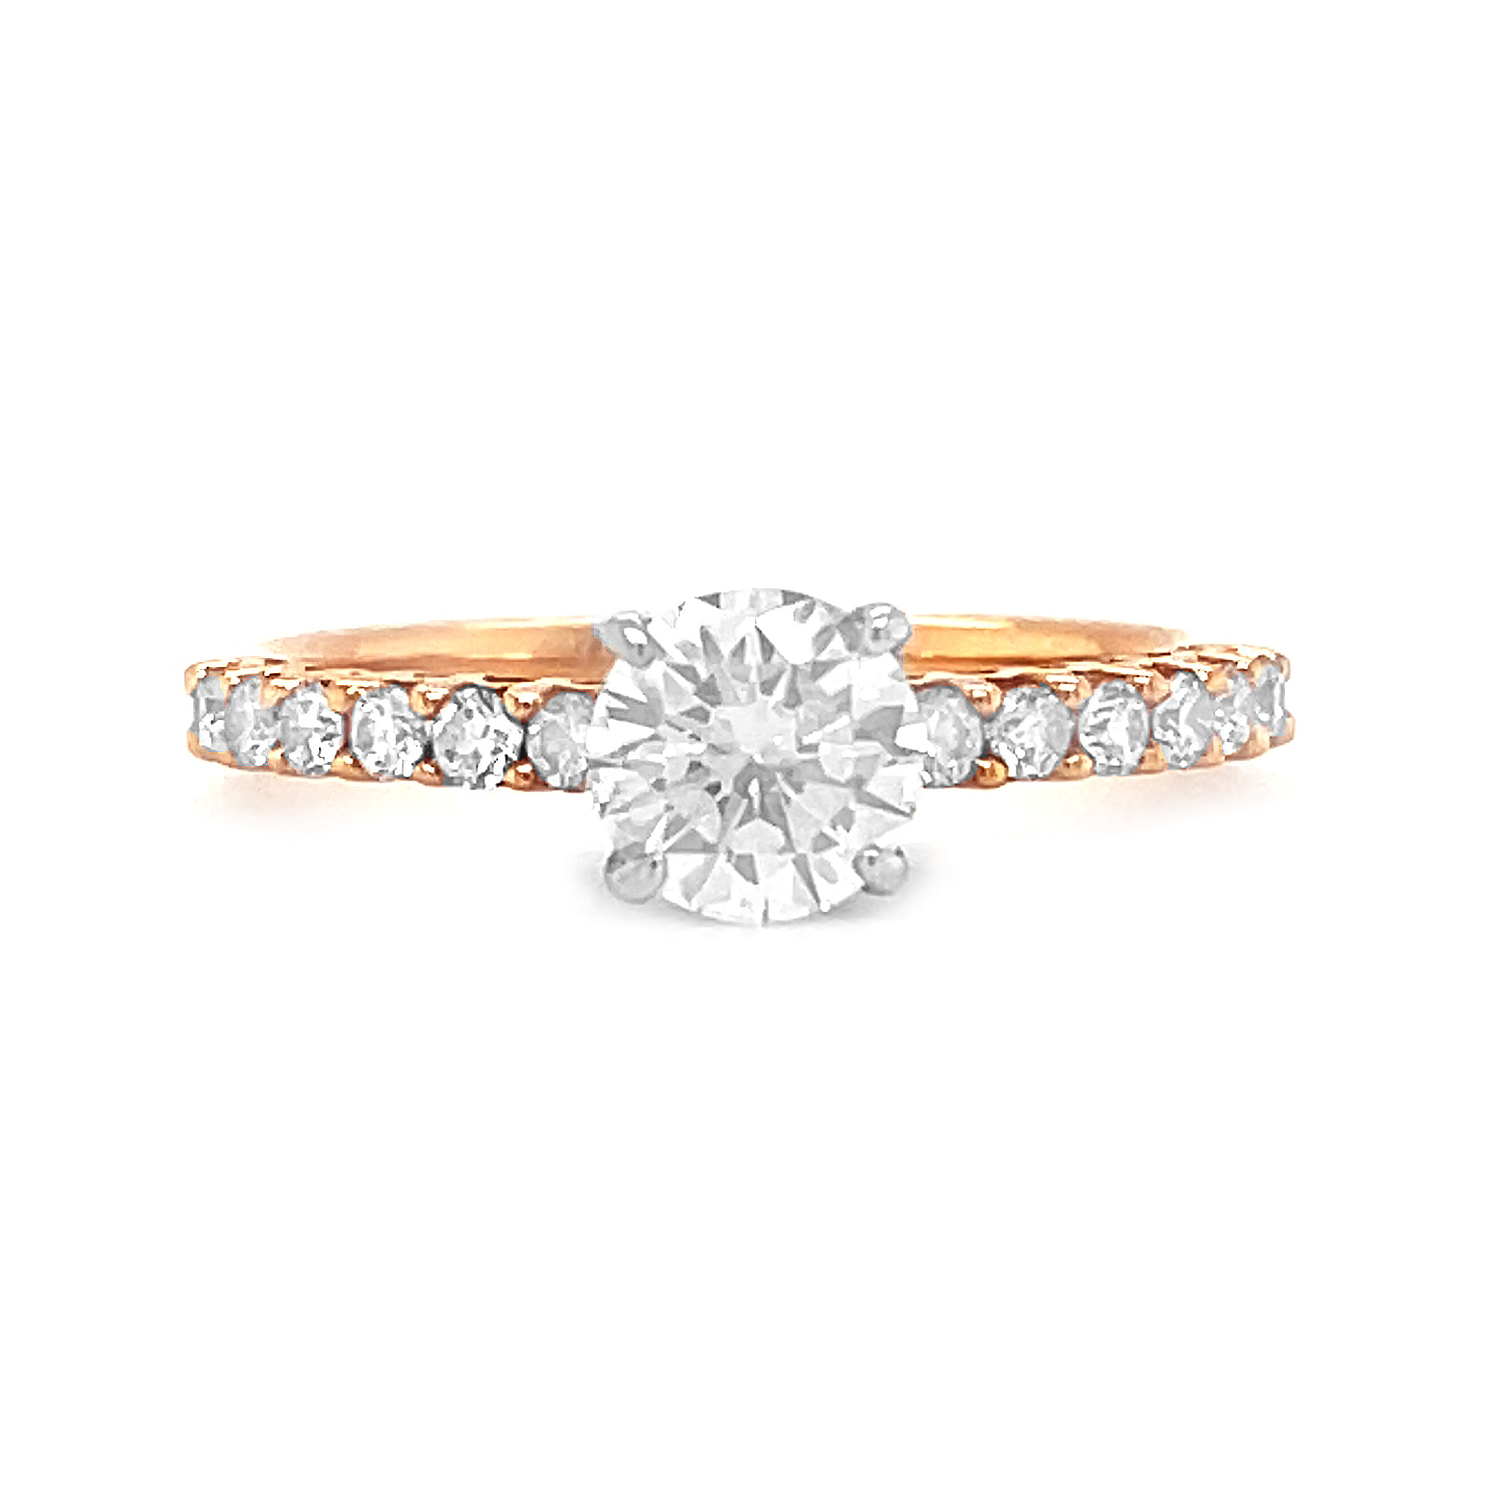 18k Red & White Gold Brilliant Cut 0.70cts Diamond Engagement Solitaire Ring